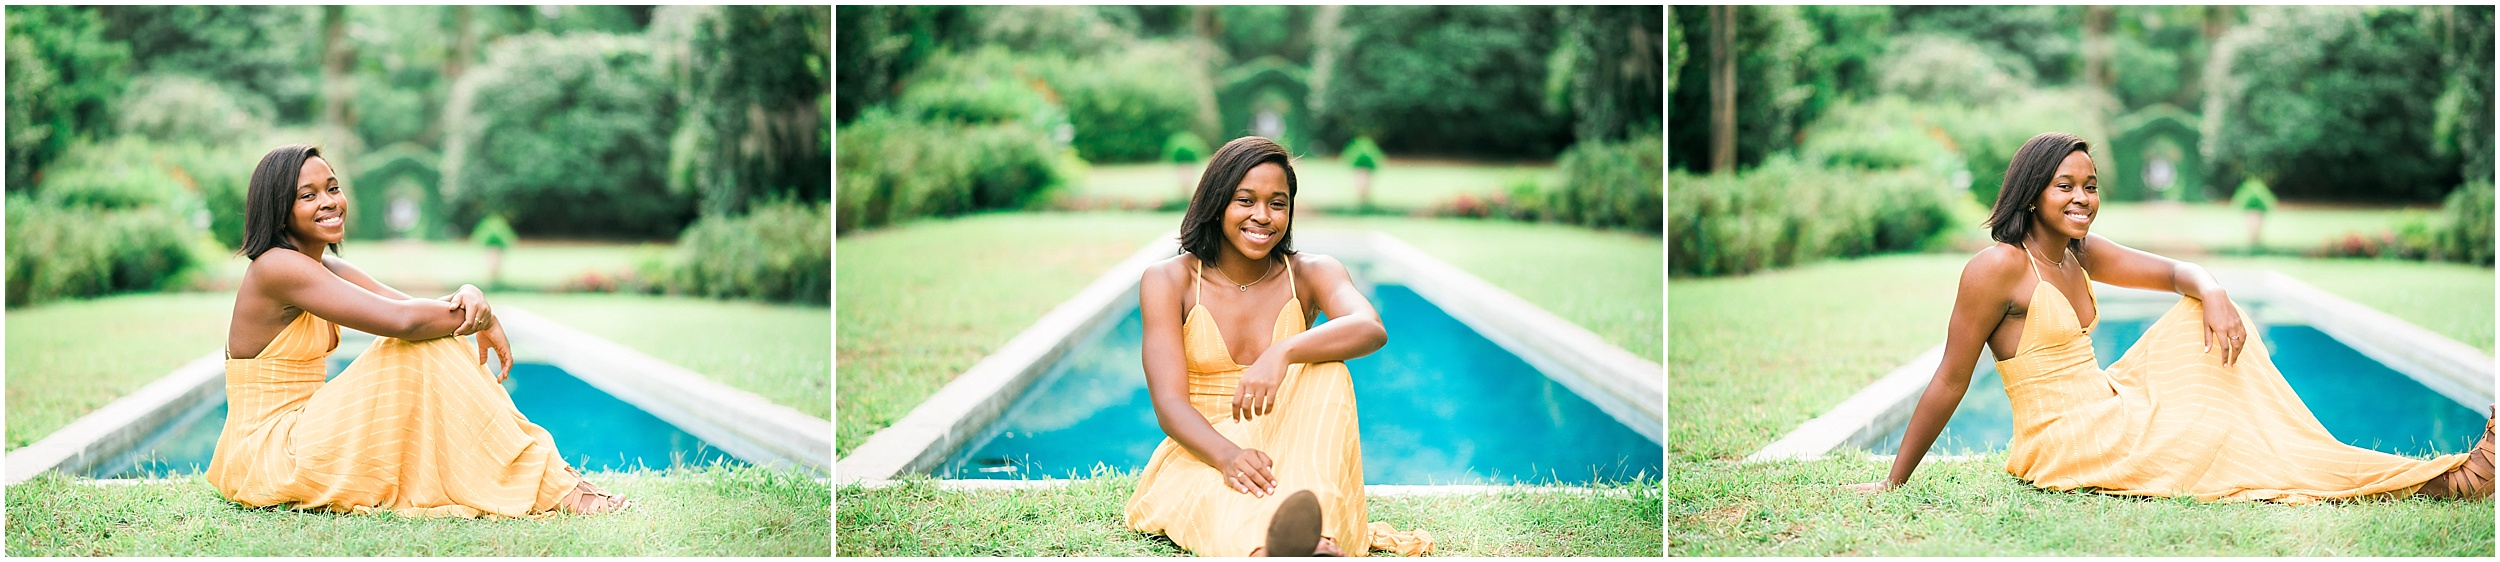 Tallahassee Florida Senior Photographer, Tenejah Senior Session at Maclay Gardens, Tallahassee Florida_0015.jpg